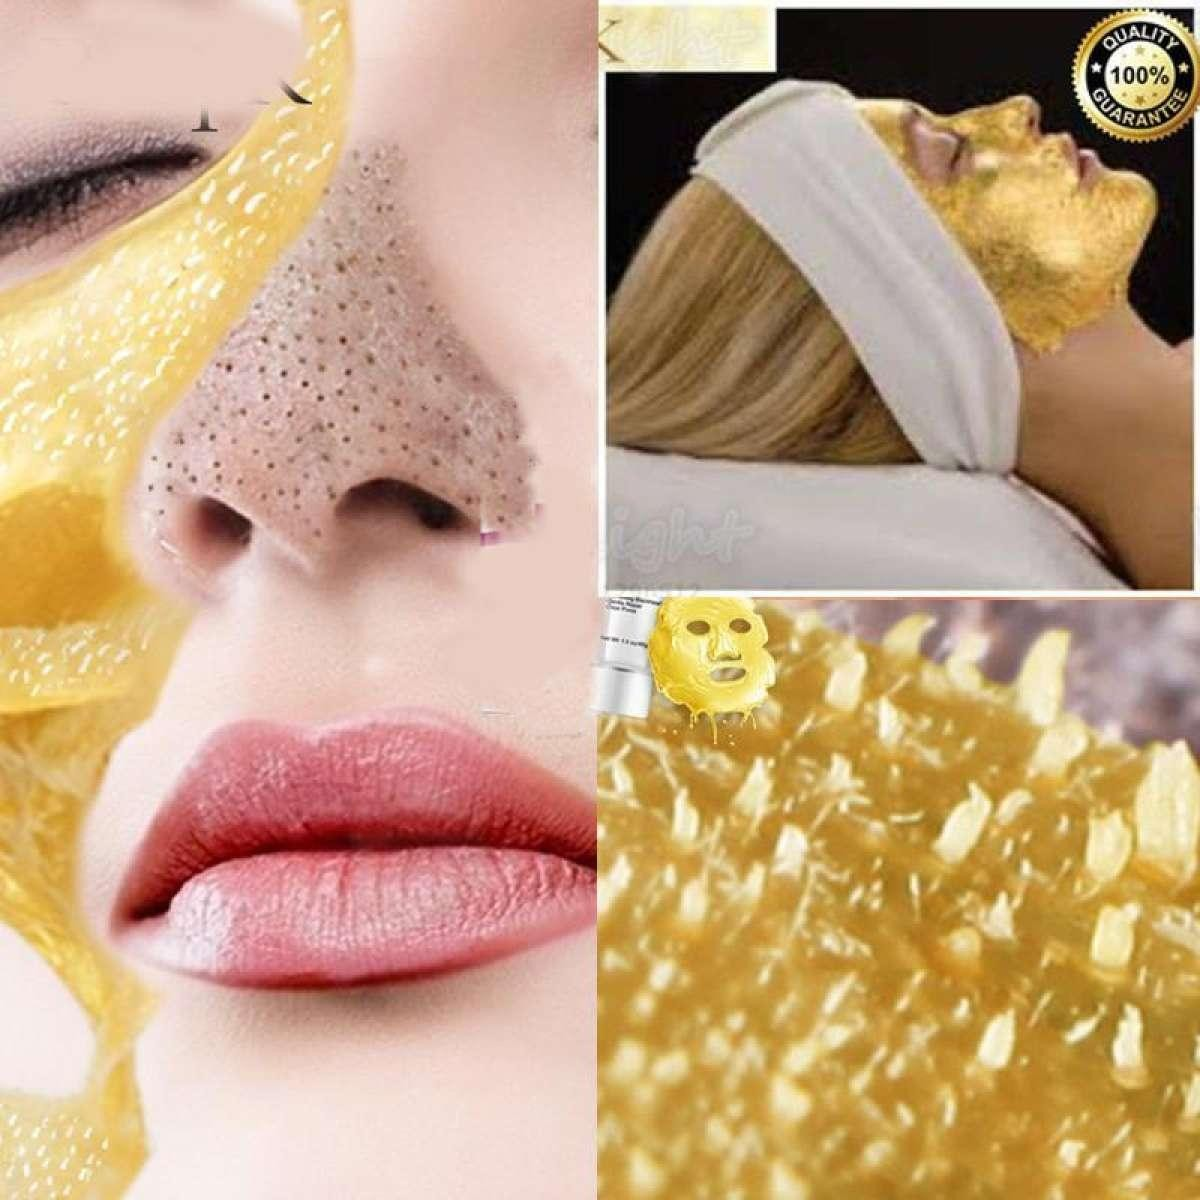 Gold Collagen Peel Off Mask Face Tear off Whitening Lifting Firming Skin Anti Wrinkle Anti Aging Facial Mask Black Head Care Rafias collection